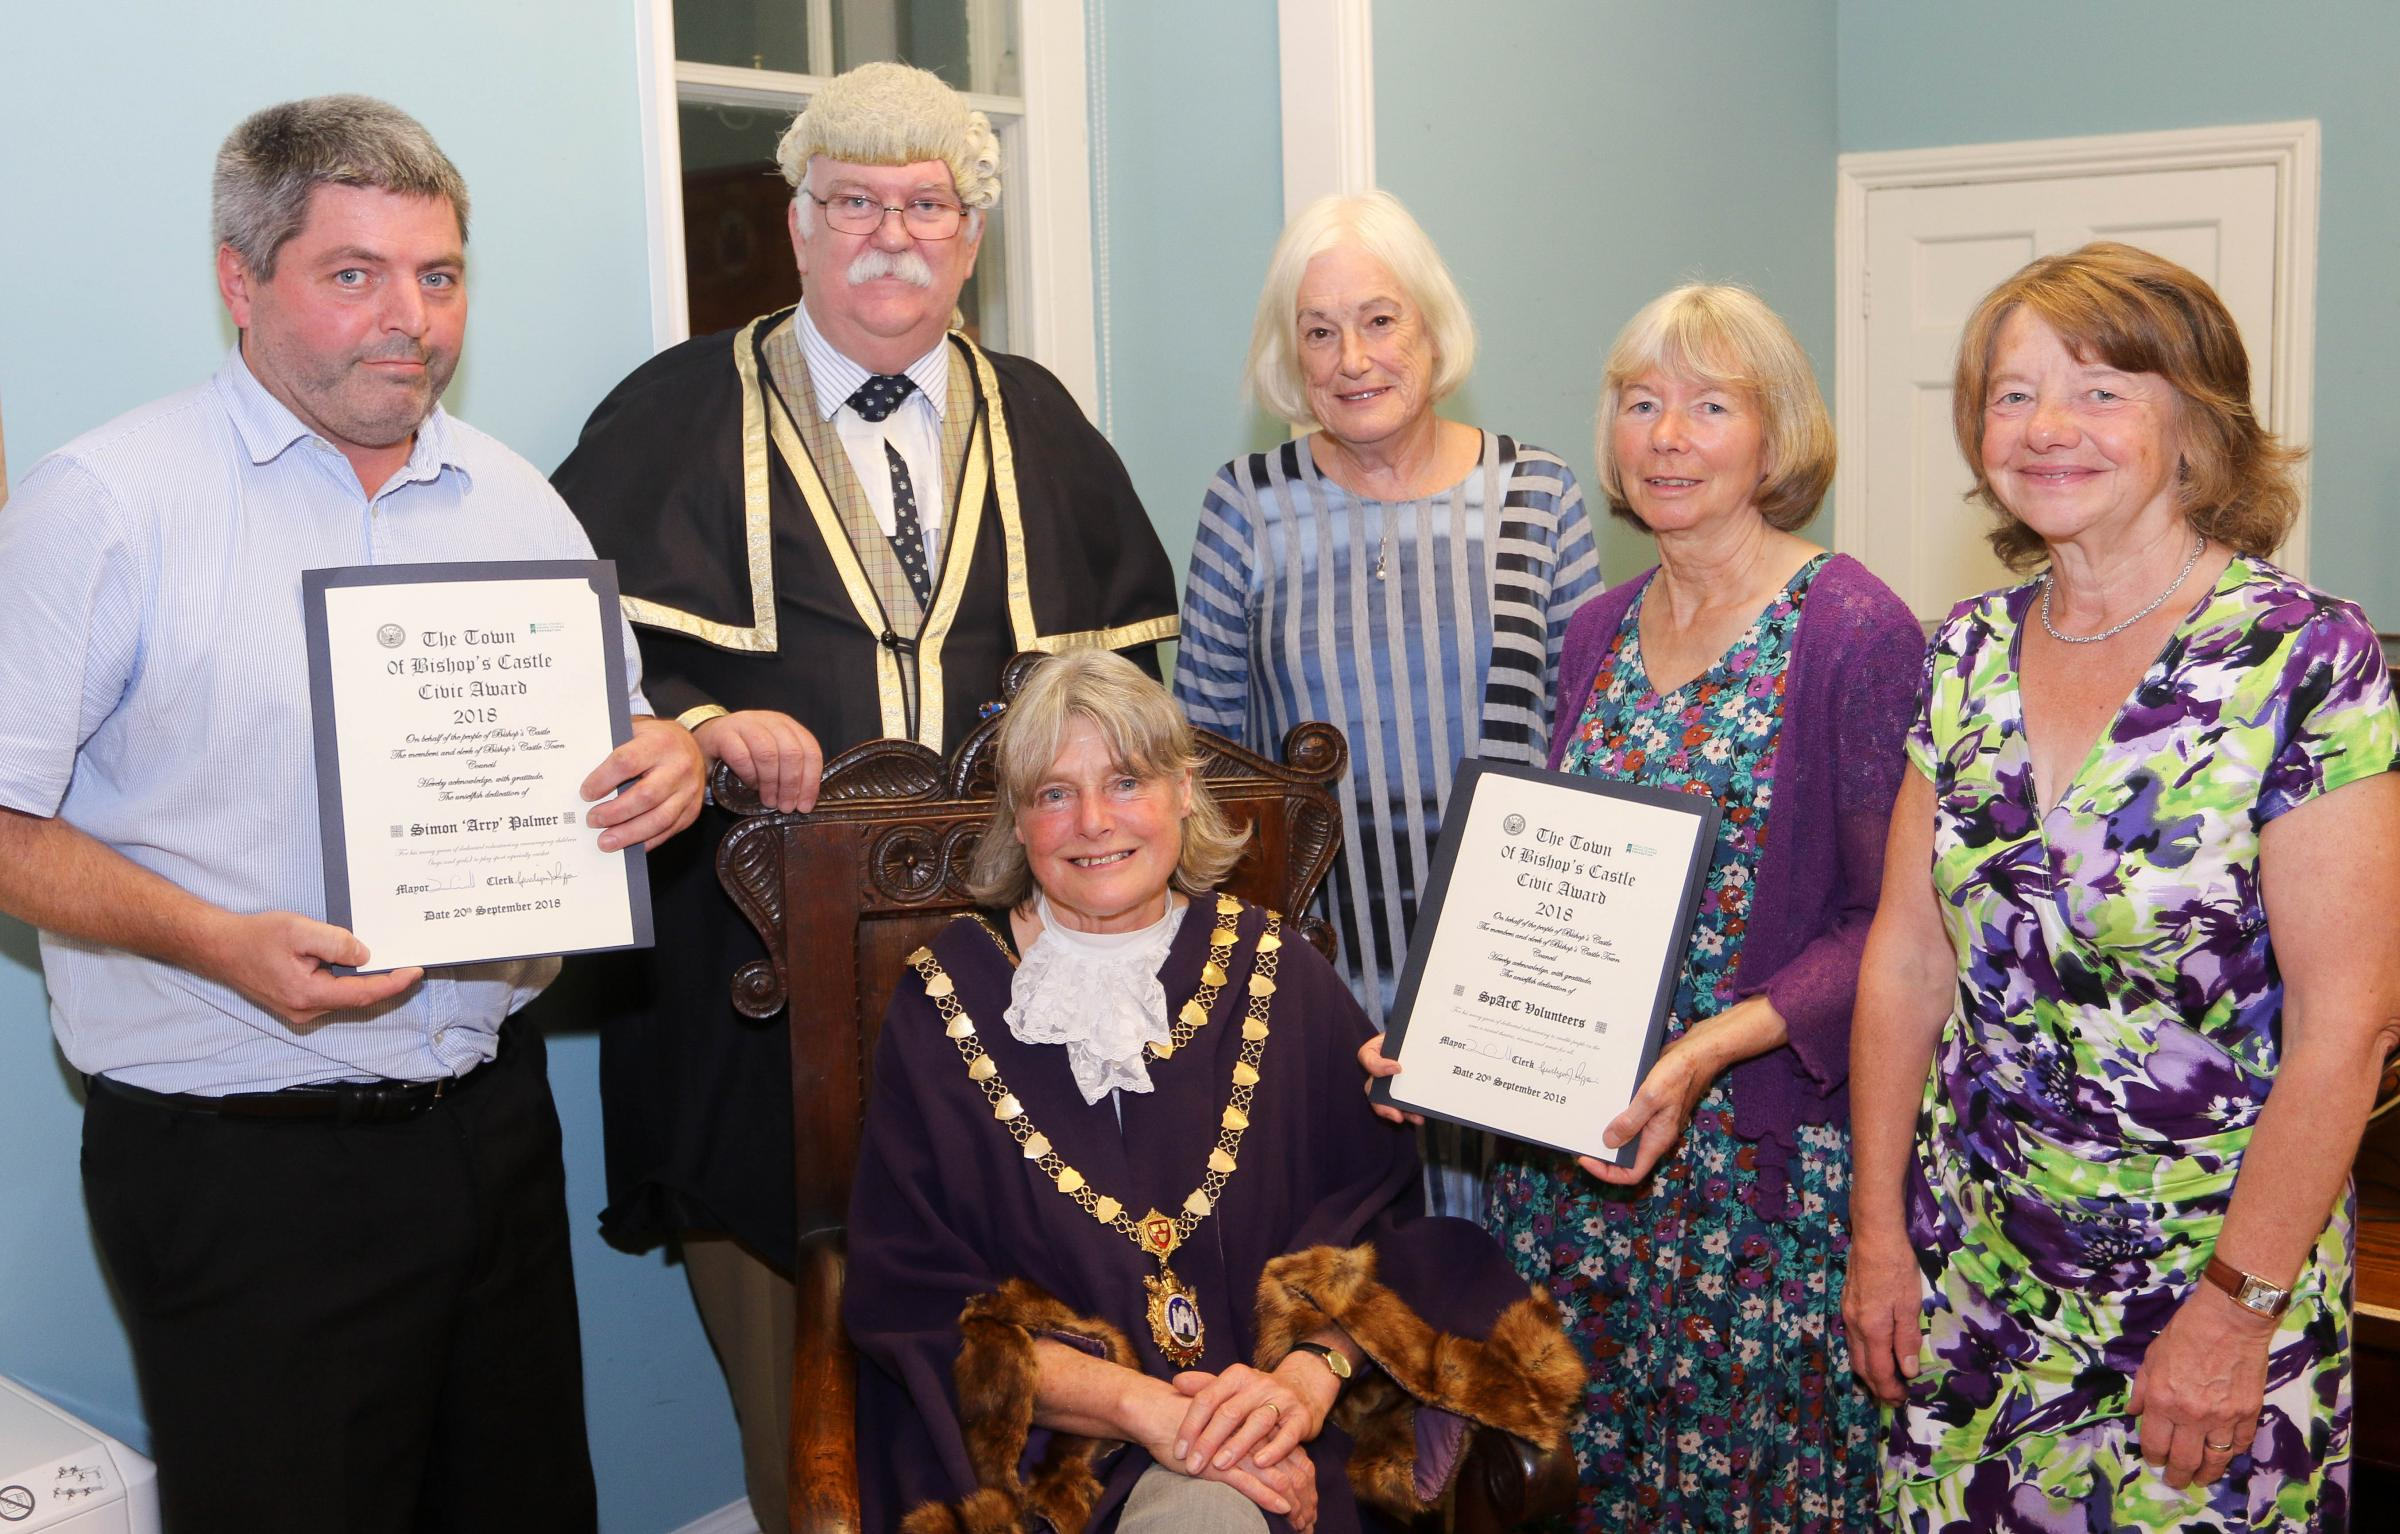 Bishop's Castle Town Council Civic Awards Night last Thursday 20th September 2018..pictured are the Civic award winners, pictured from back left, Simon Palmer, Gwilym  Rippon (Town Clerk) Julia Parker, Maureen Wall and Jo Pritchard..front, Jane Carrol